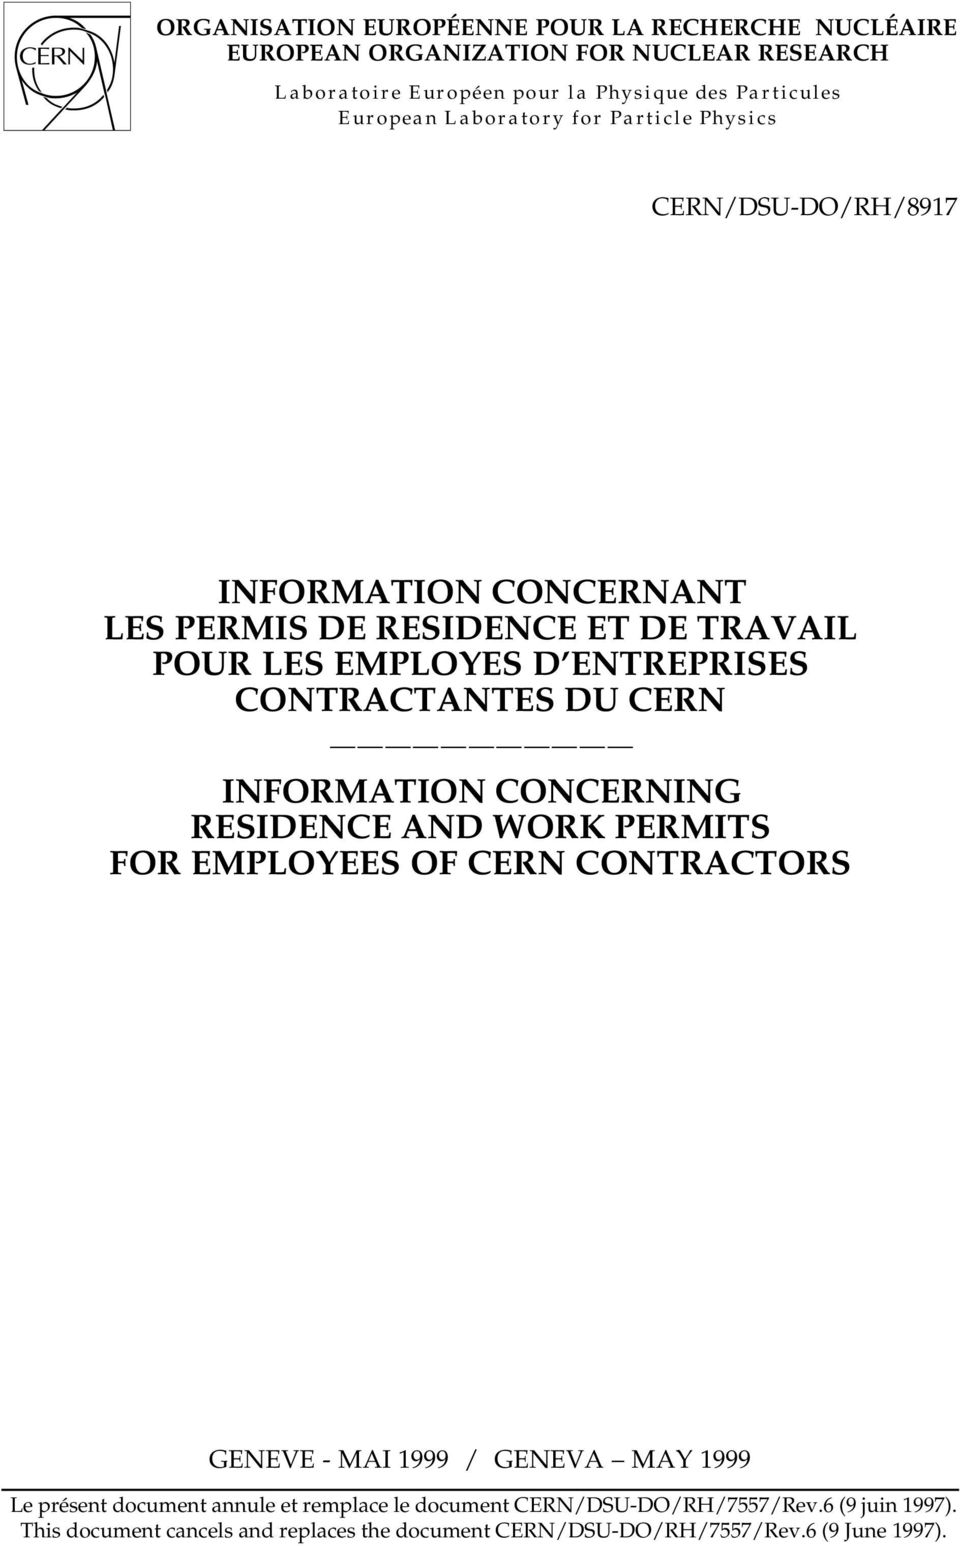 LES EMPLOYES D ENTREPRISES CONTRACTANTES DU CERN INFORMATION CONCERNING RESIDENCE AND WORK PERMITS FOR EMPLOYEES OF CERN CONTRACTORS GENEVE - MAI 1999 / GENEVA MAY 1999 Le